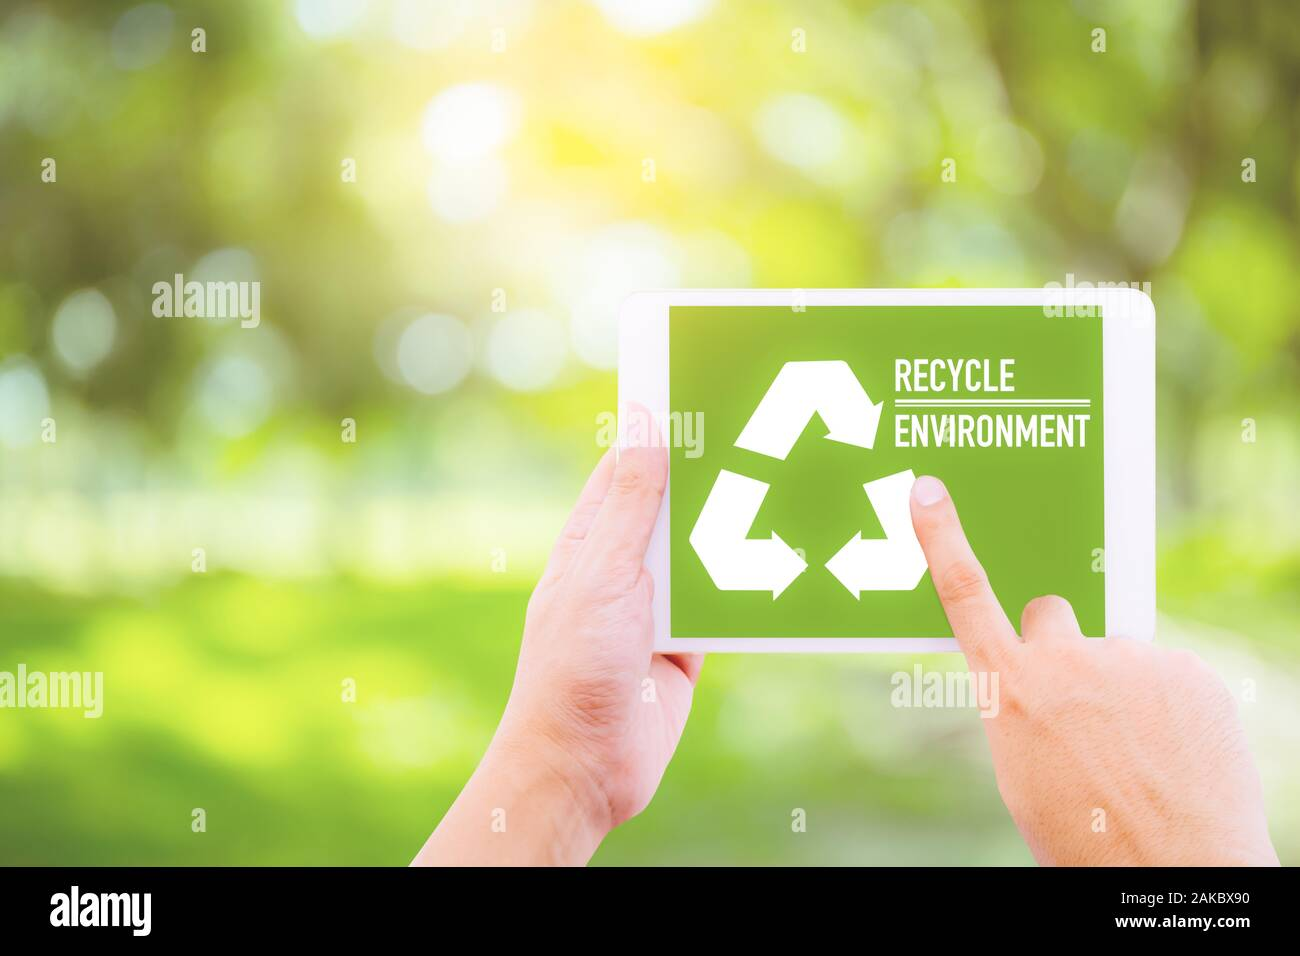 Ecology Friendly Recycle Sign Symbol With Tablet Holding Hand